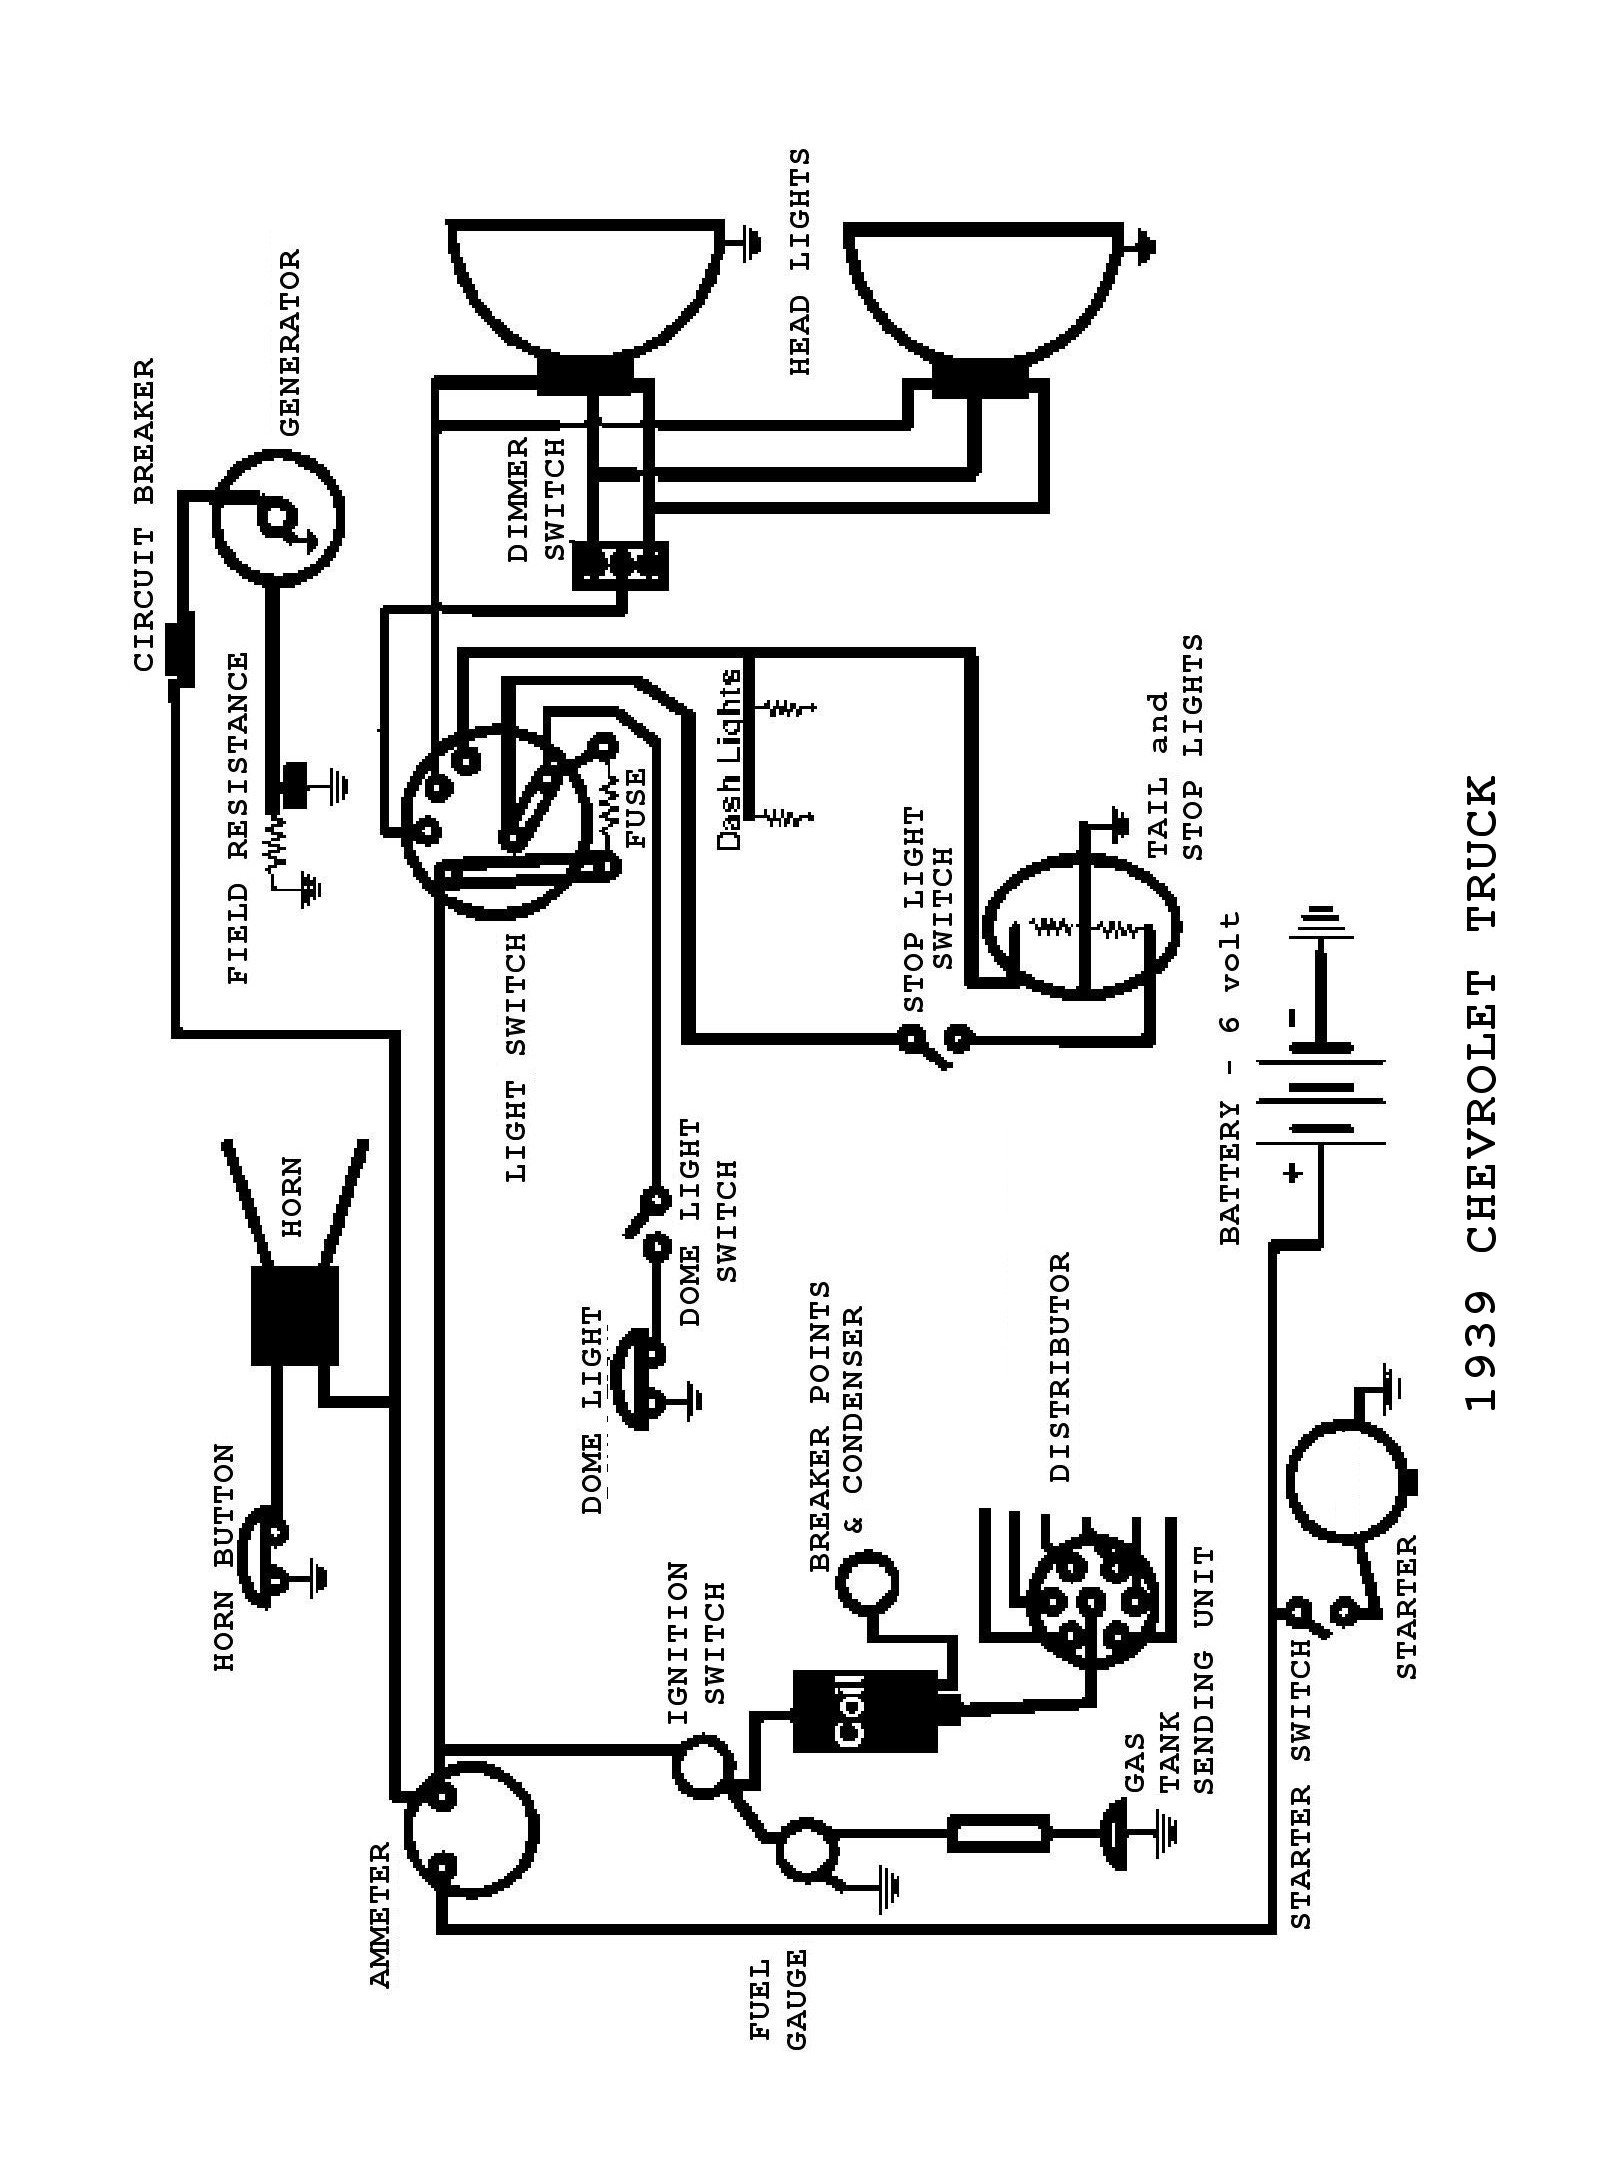 Chevy Wiring diagrams – Jeep 6 Cylinder Points Ignition Wiring Diagram